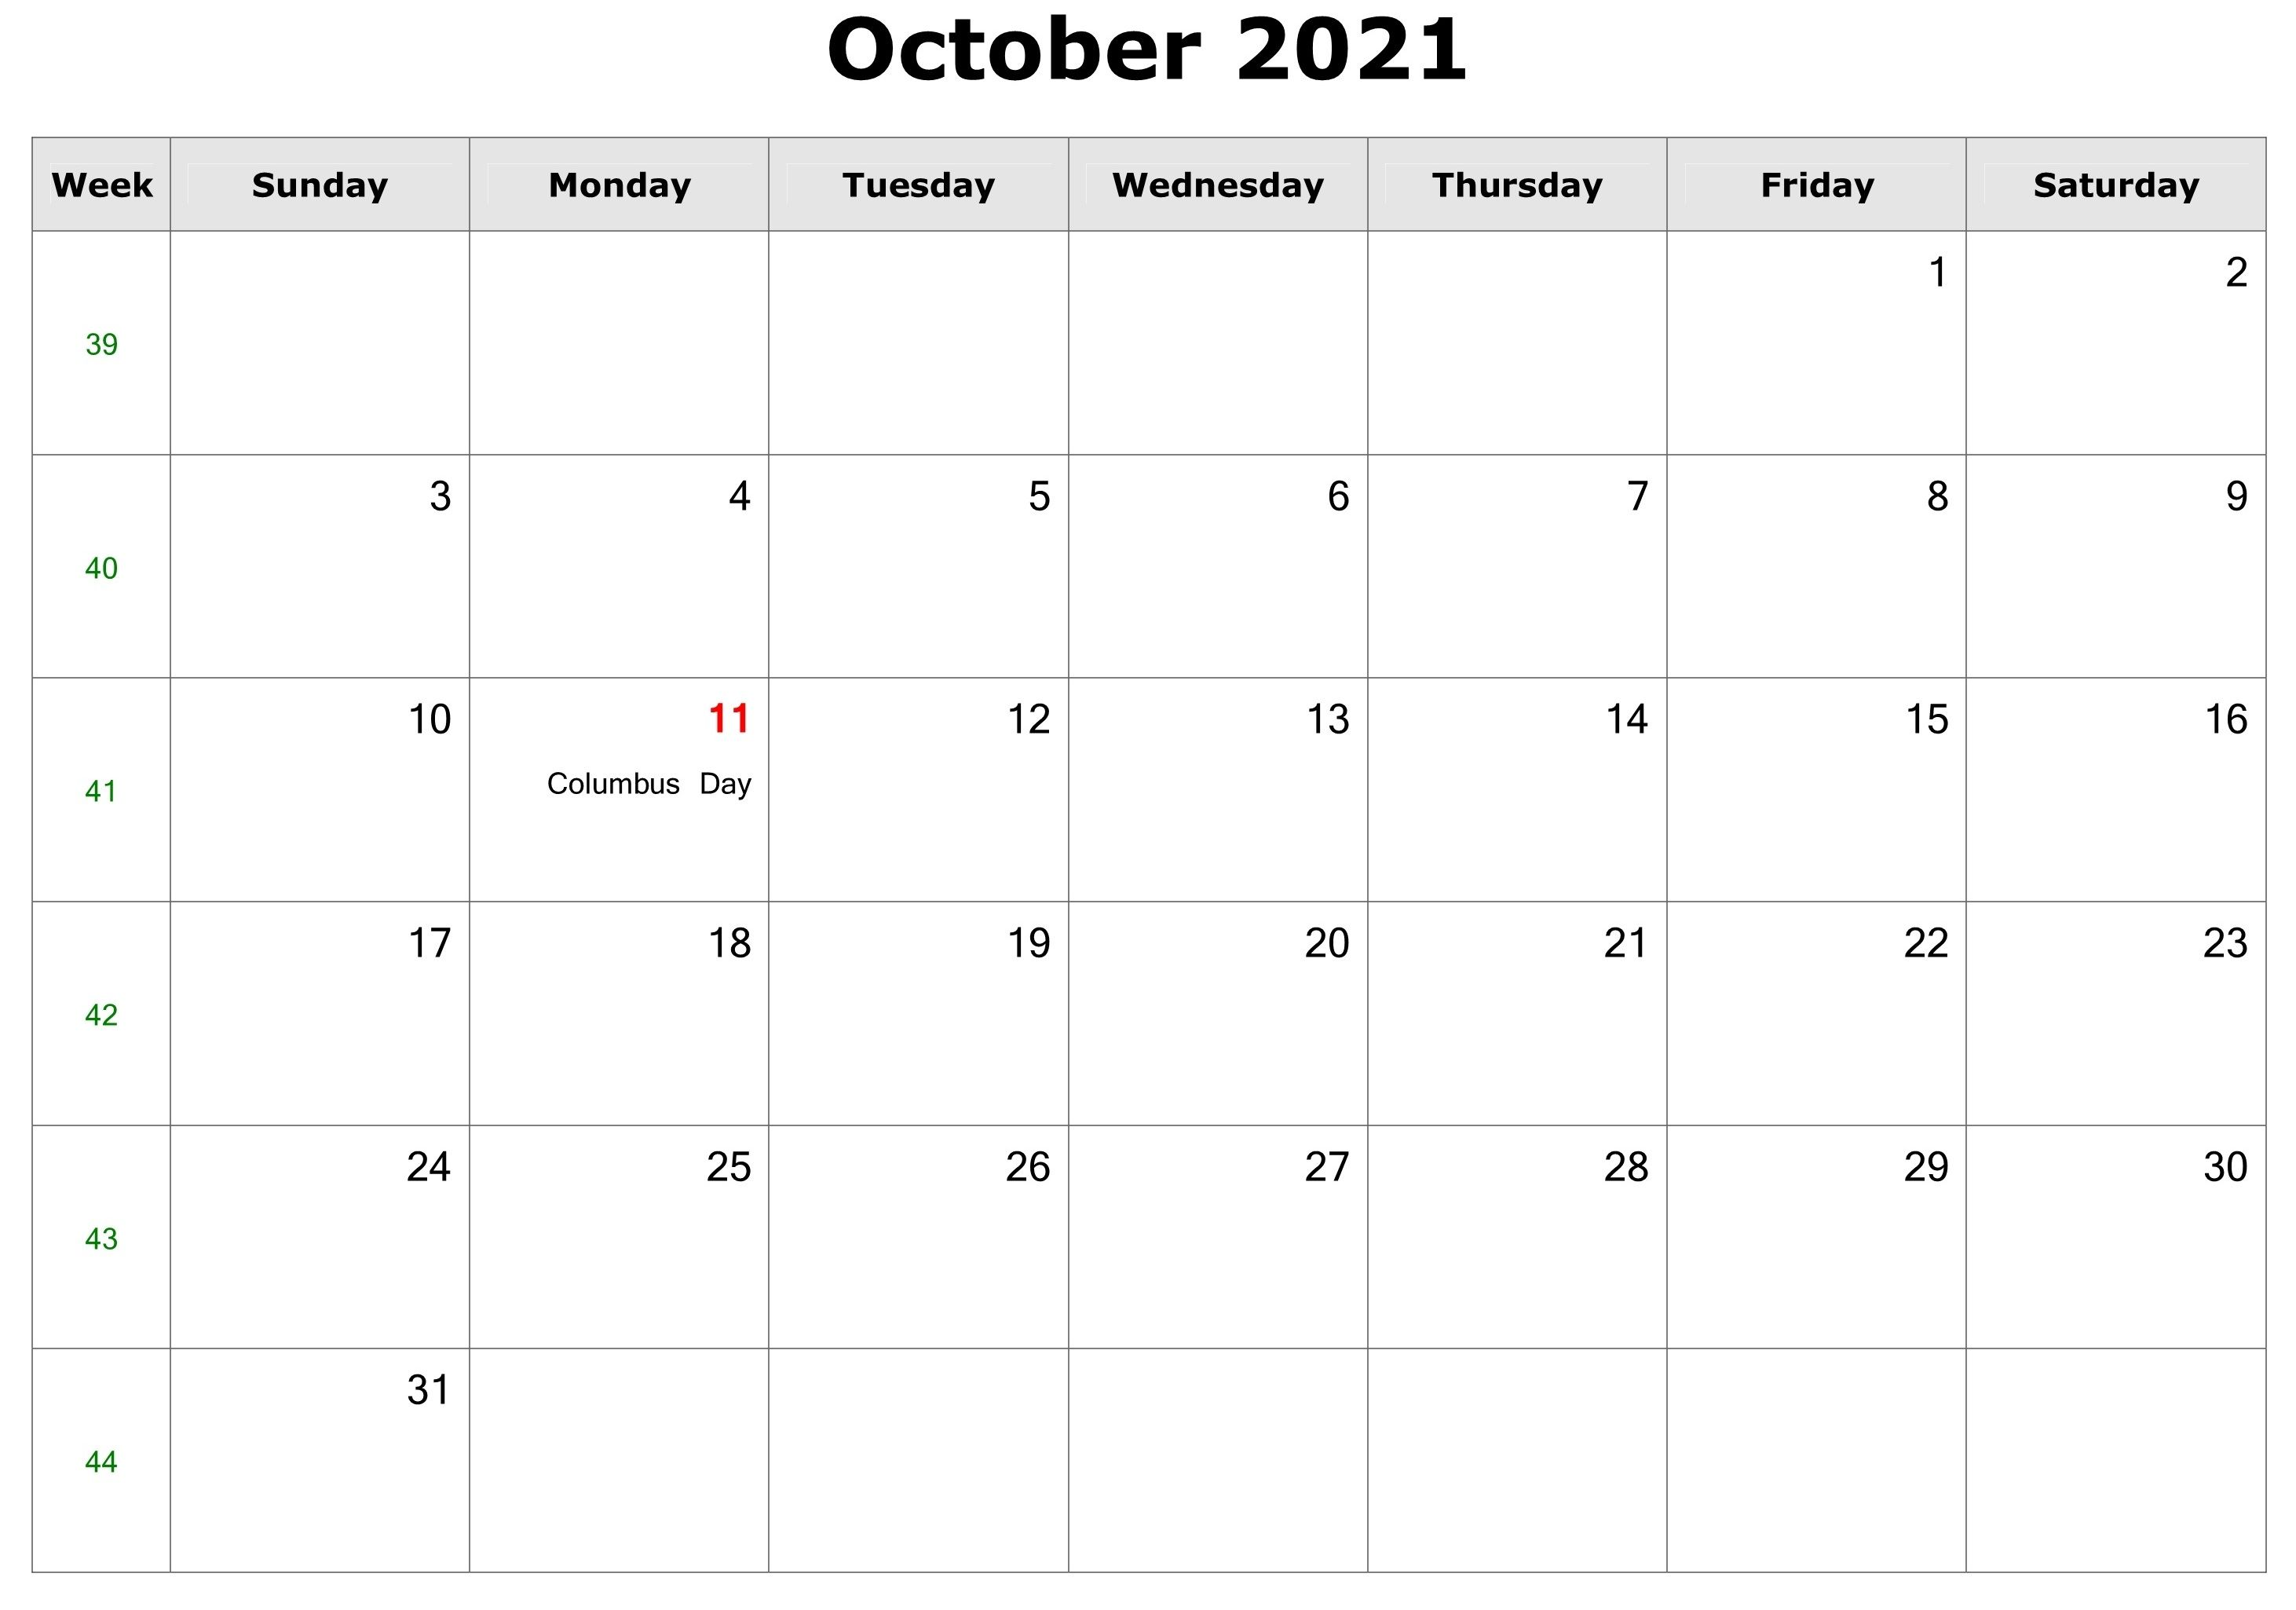 October 2021 Calendar Excel Images